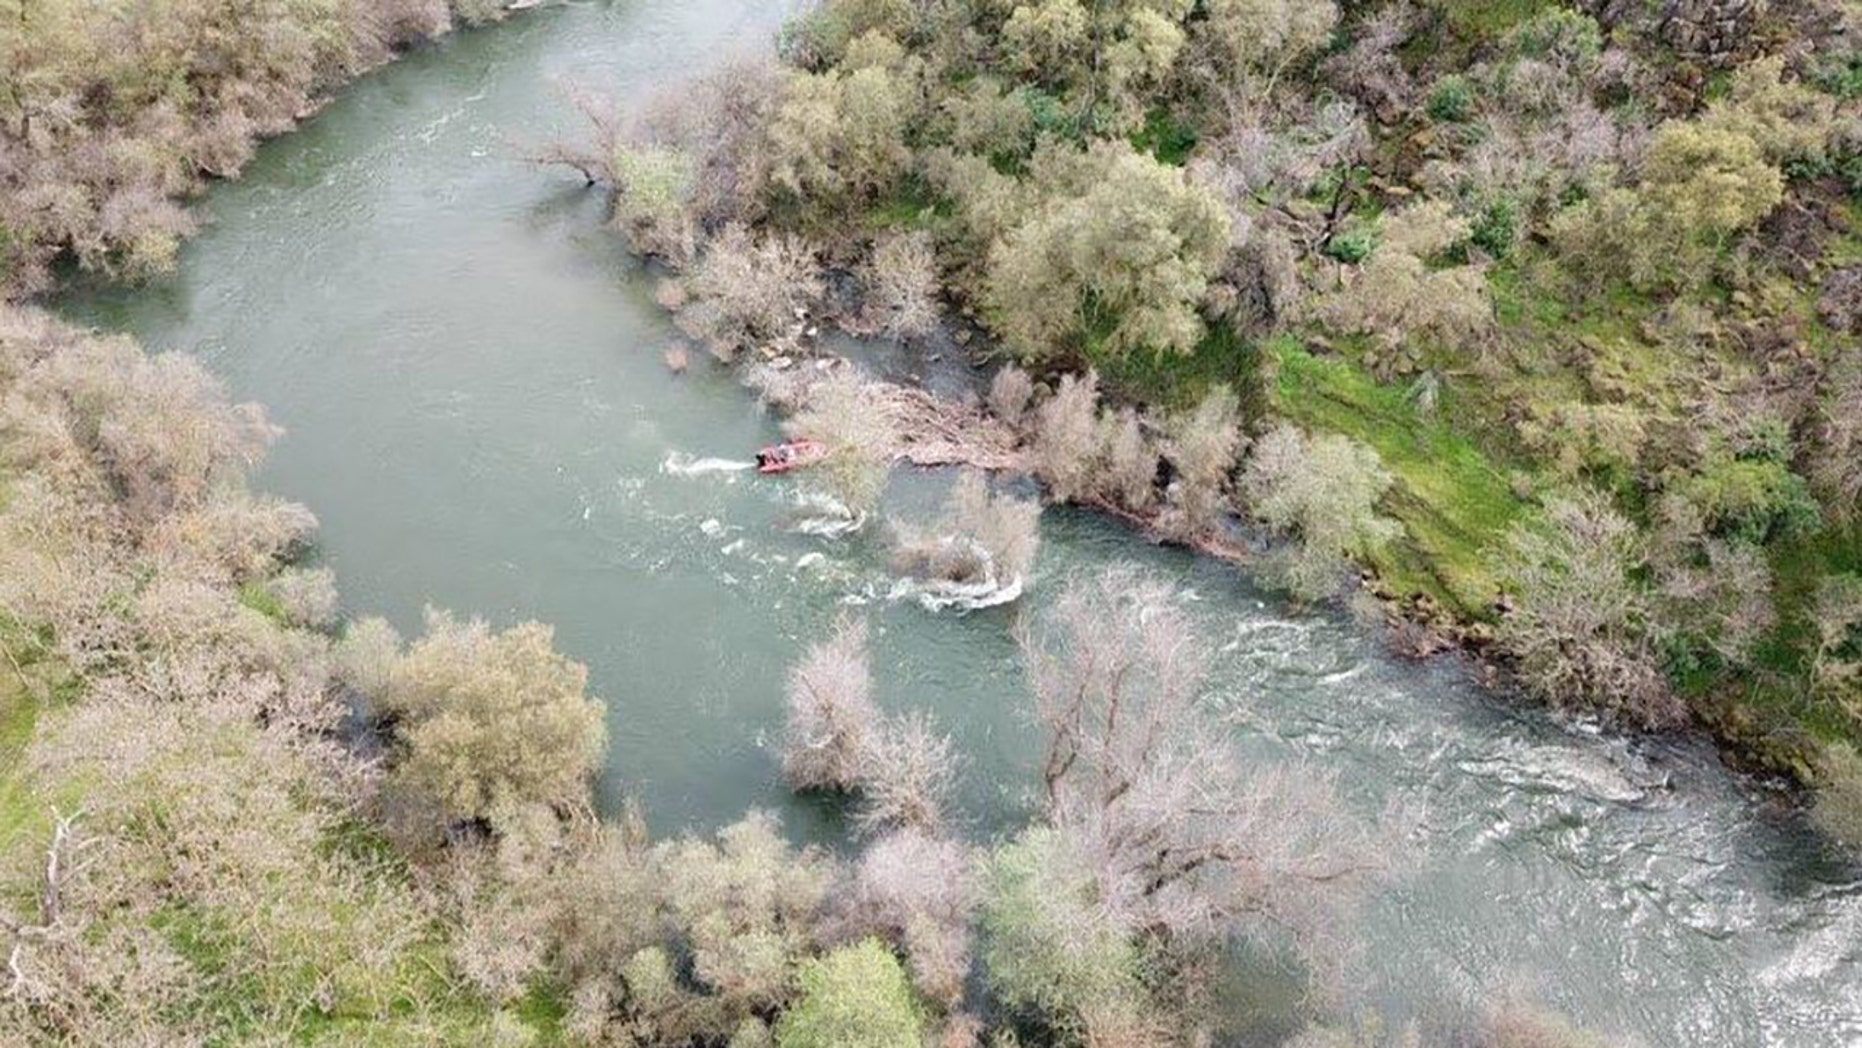 The search for a 5-year-old girl who slipped into the Stanislaus River in Northern California on Sunday has been reduced as she is now presumed to have drowned, a report said Tuesday.